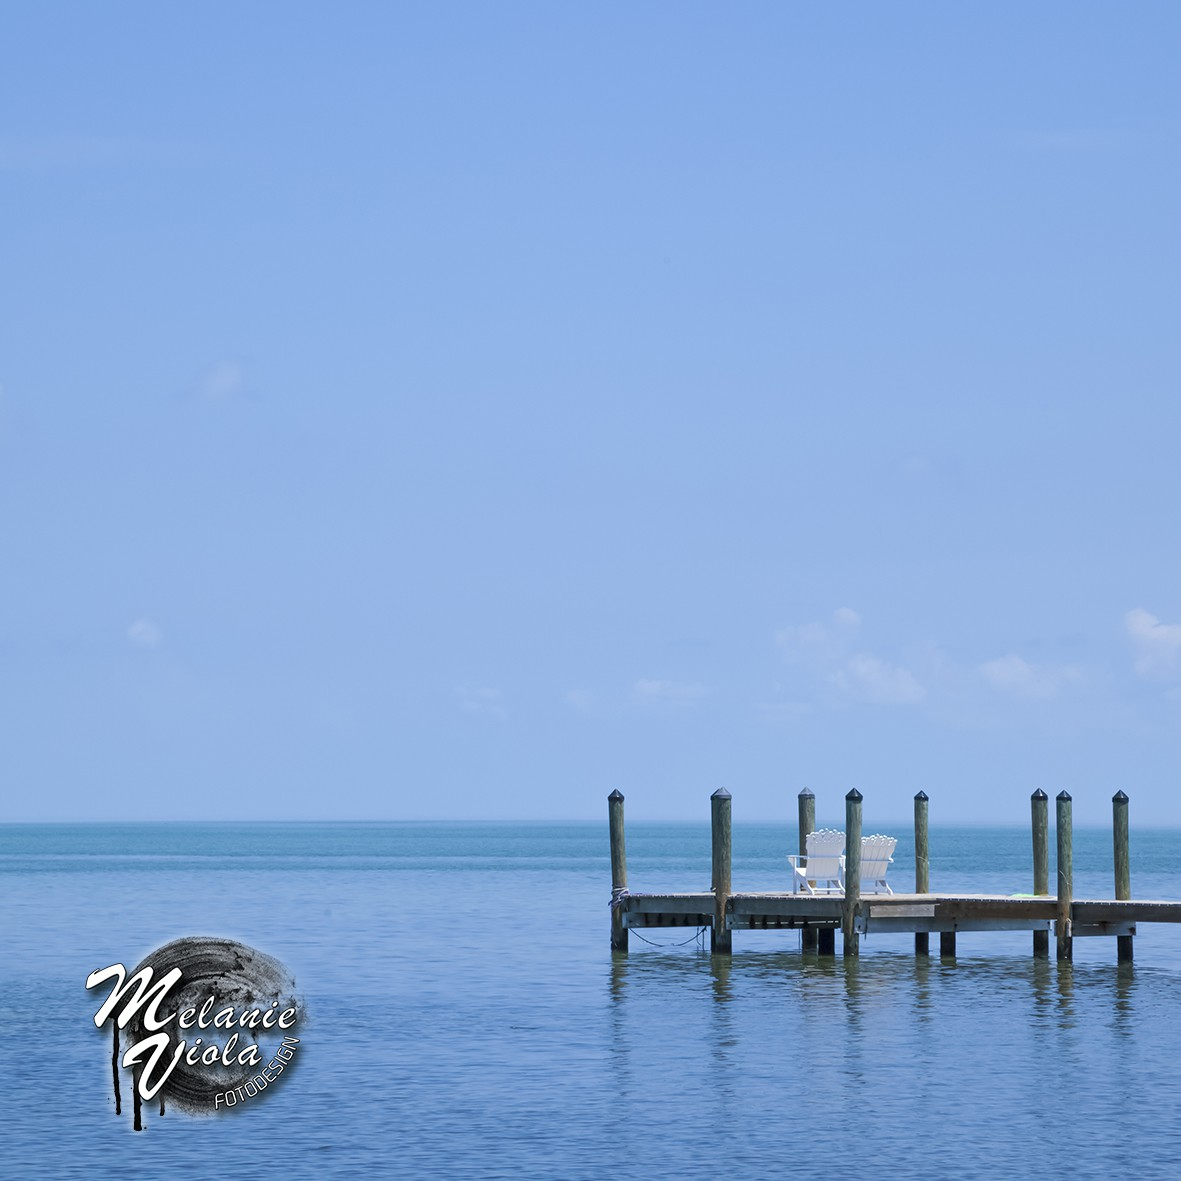 LINK - OhMyPrints Onlineshop - FLORIDA KEYS Ruhe